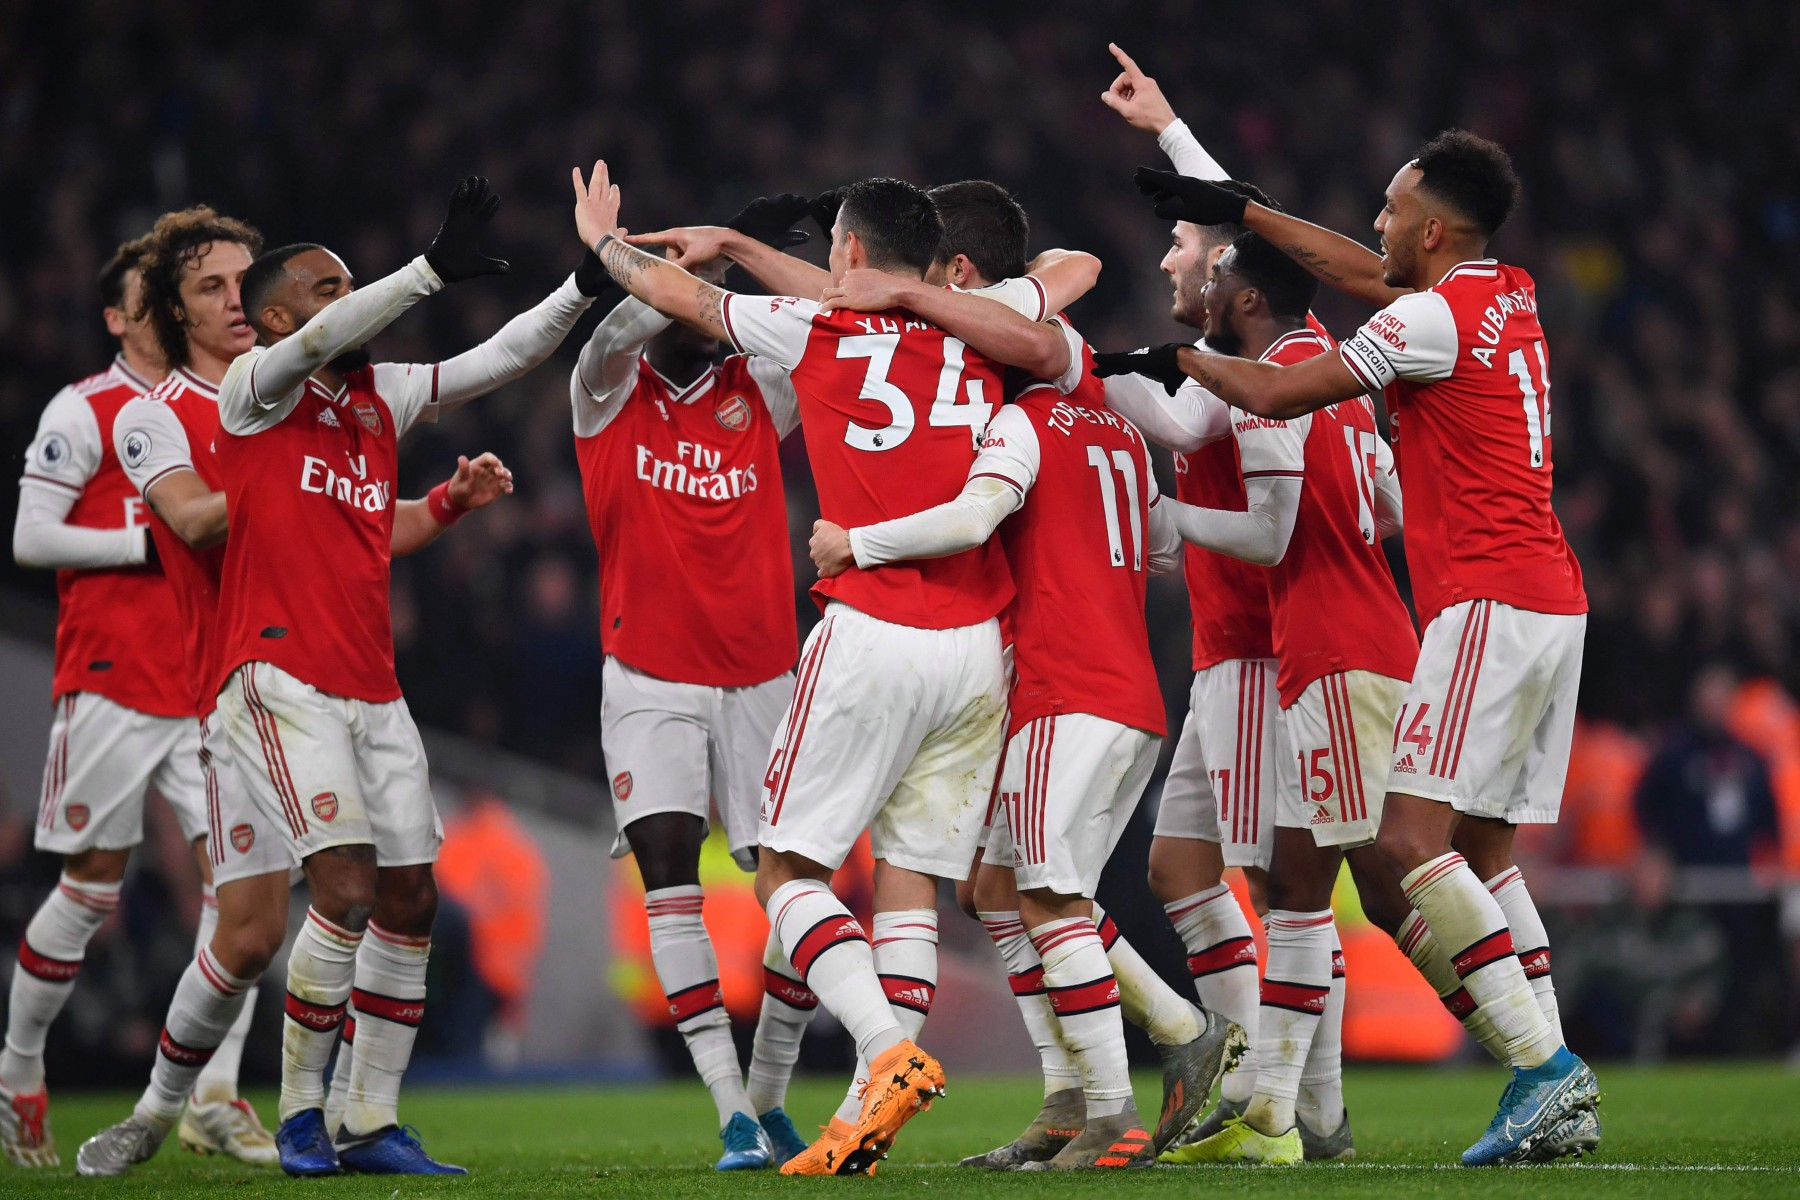 Arsenal v manchester united betting preview nfl betting free bets no deposit